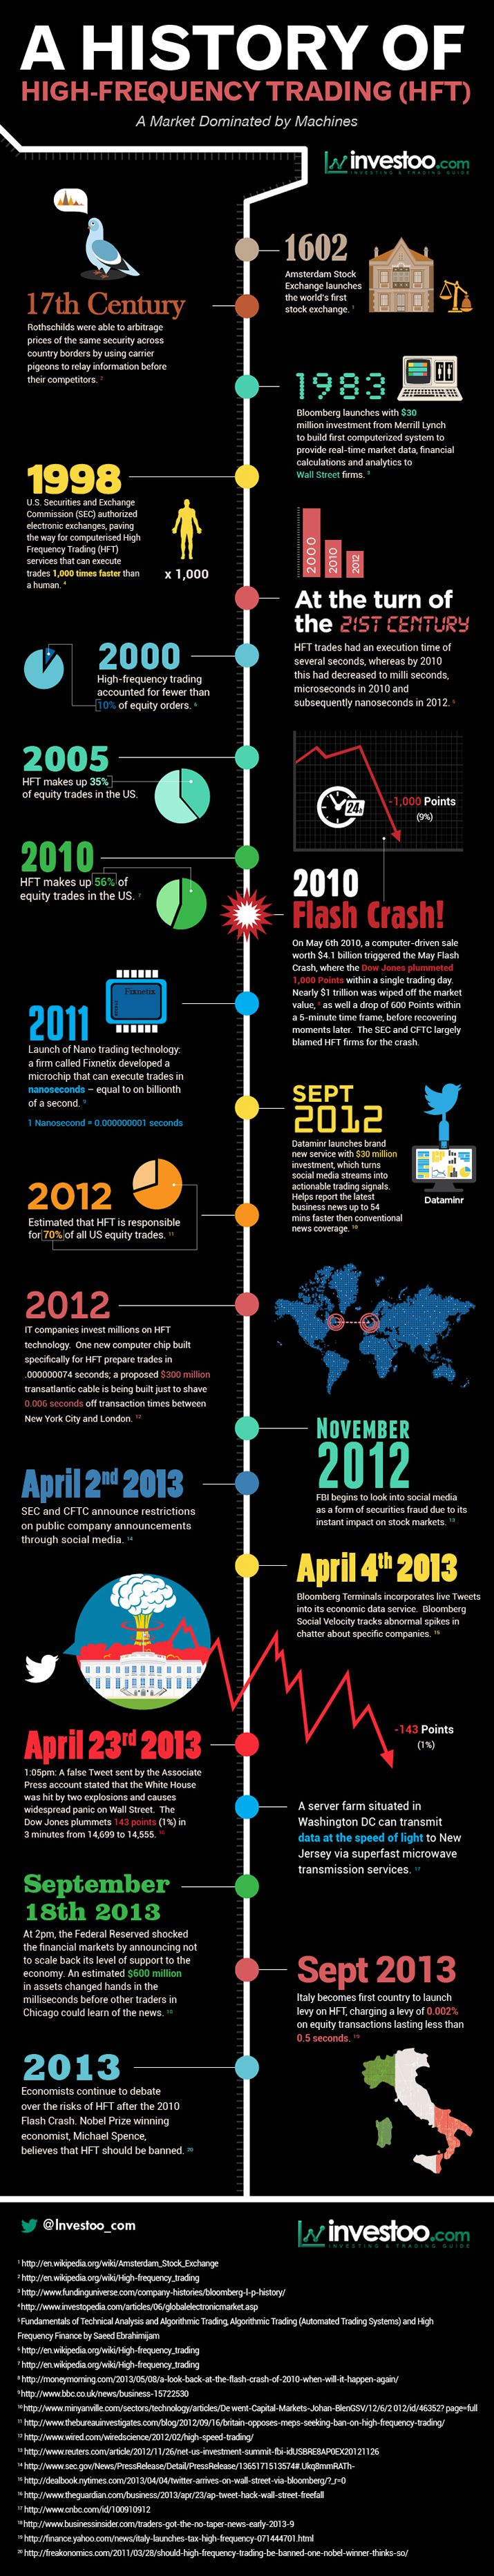 A History Of High Frequency Trading [INFOGRAPHIC] #history#trading